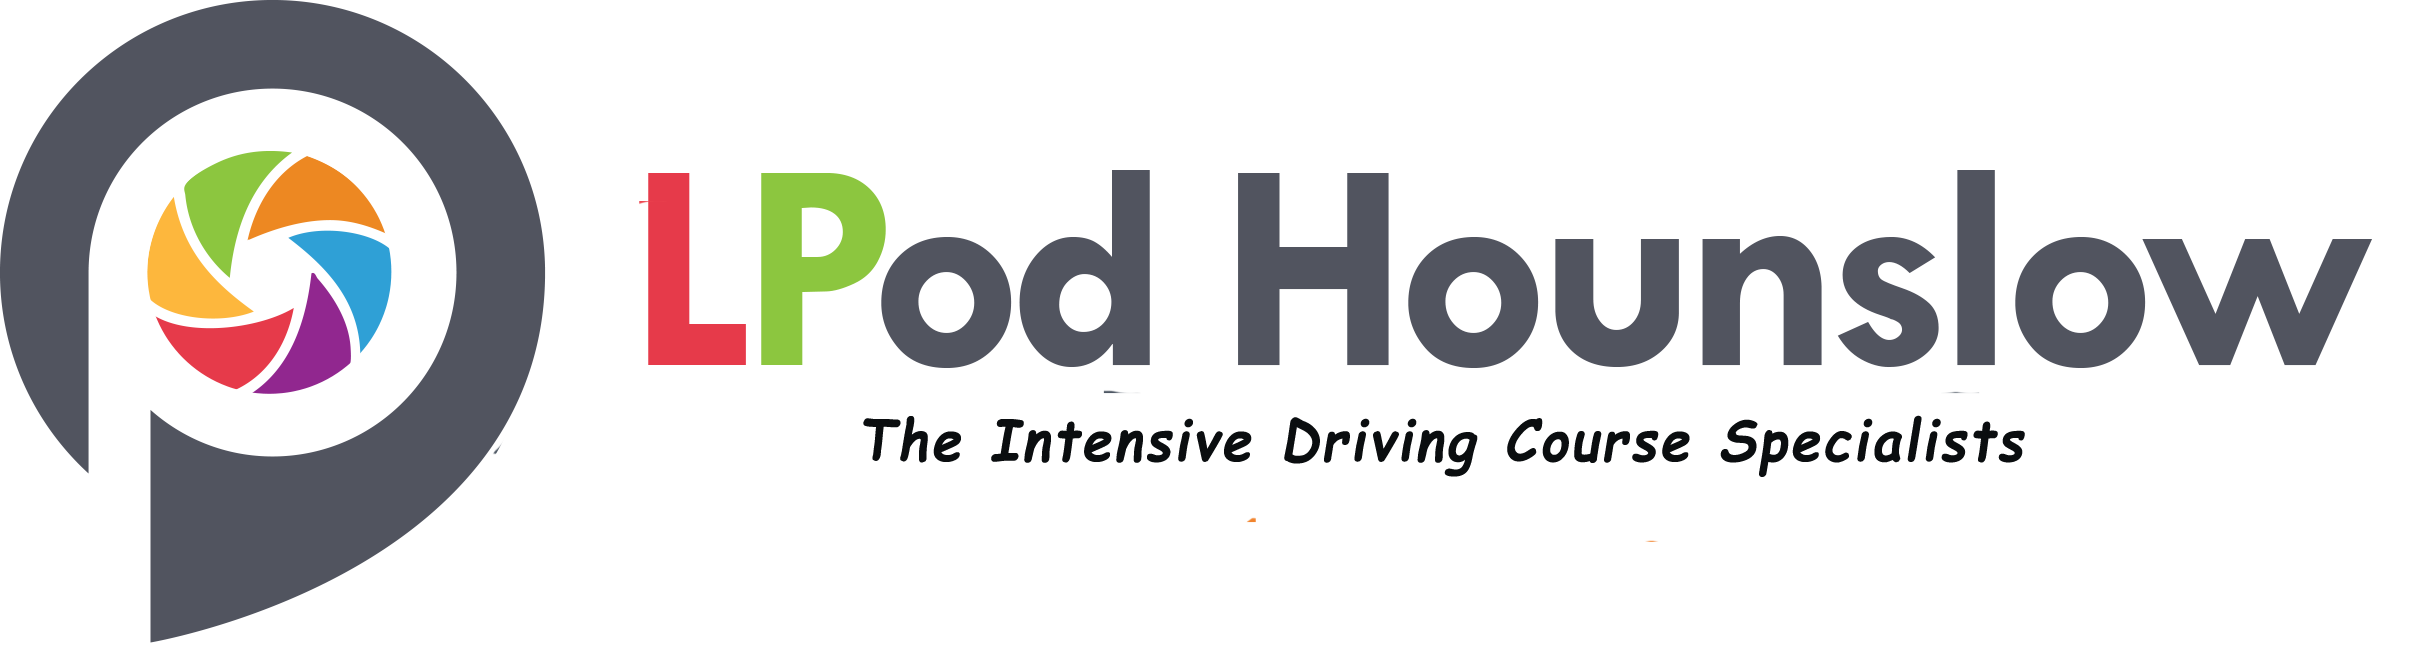 intensive driving courses housnlow